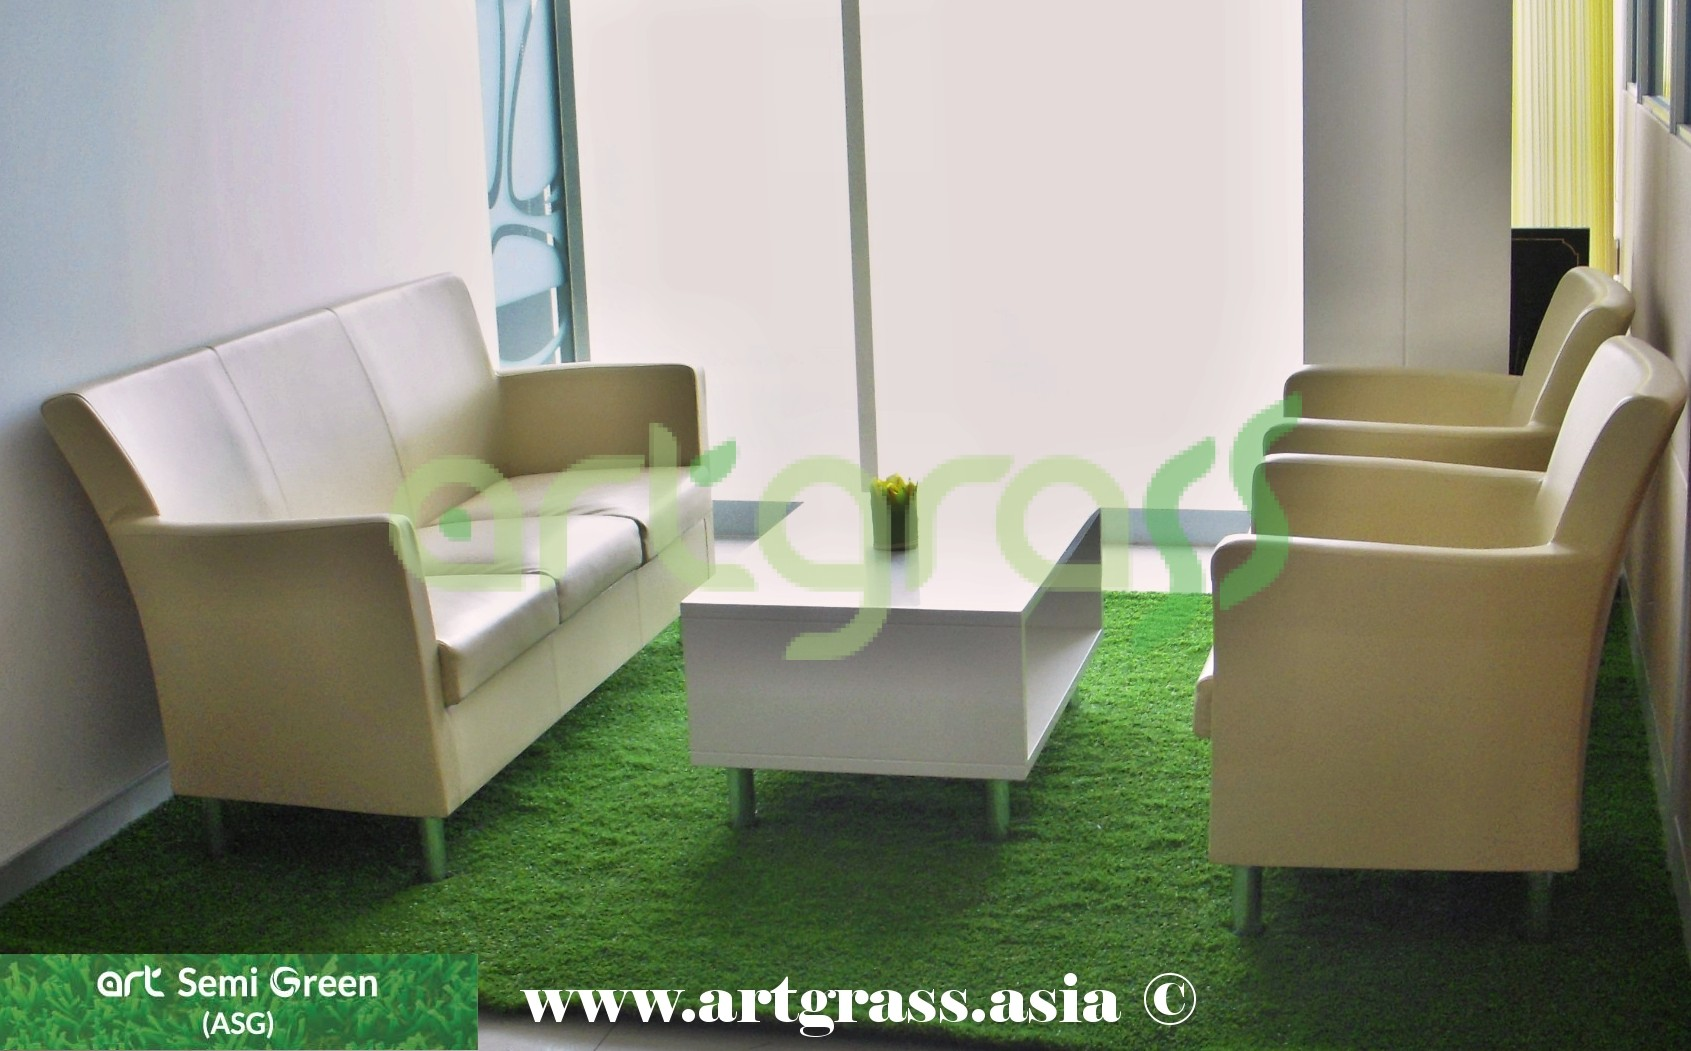 ArtGrass-karpet-permadani-living-room-rumput-sintetis-High